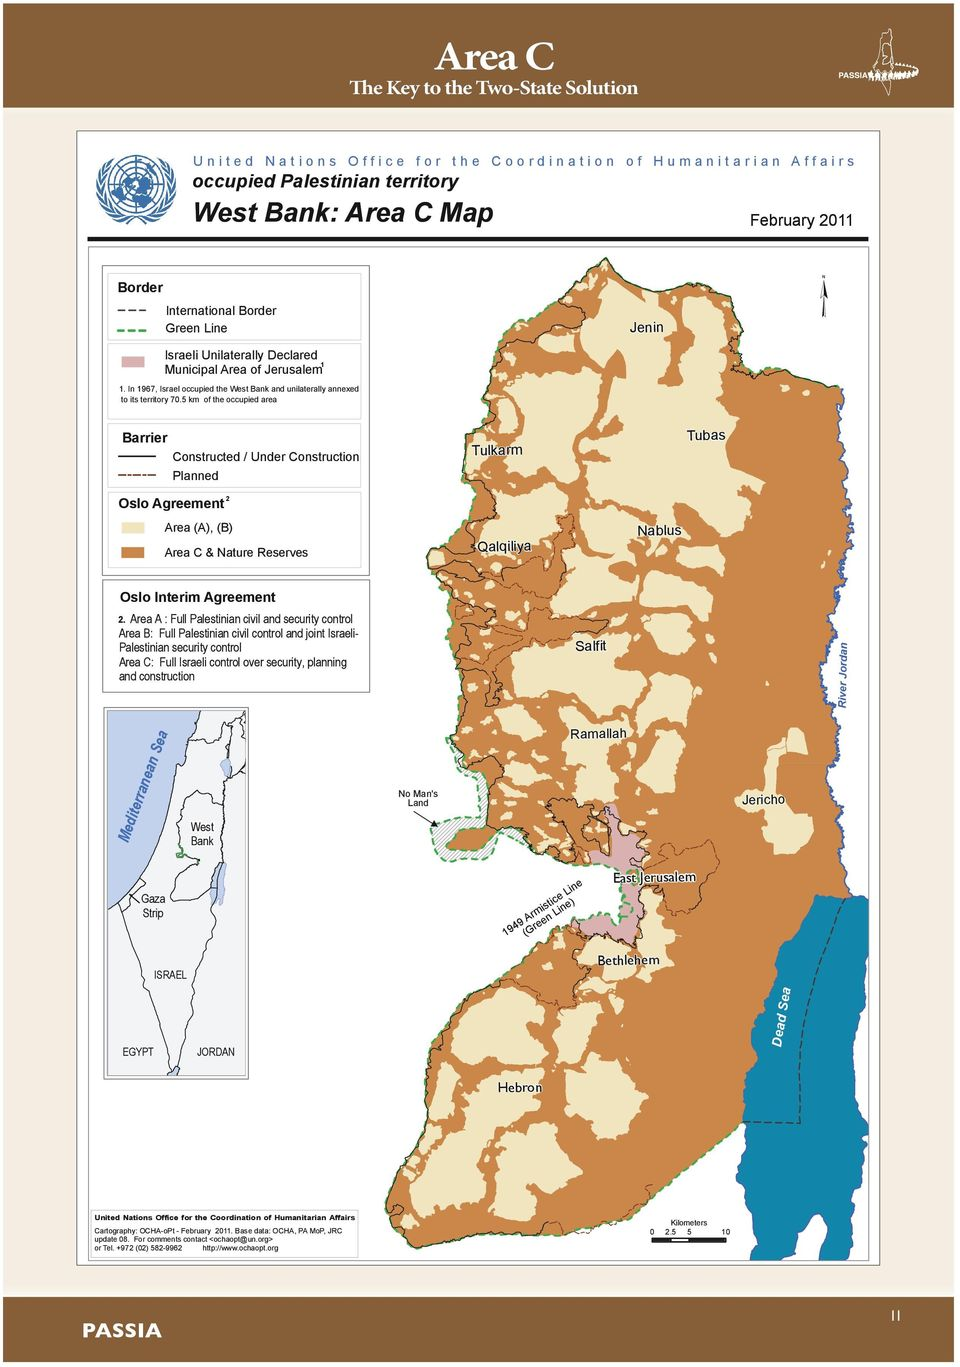 5 km of the occupied area Barrier Constructed / Under Construction Planned Tulkarm Tubas Oslo Agreement 2 Area (A), (B) Area C & Nature Reserves Qalqiliya Nablus Oslo Interim Agreement 2.